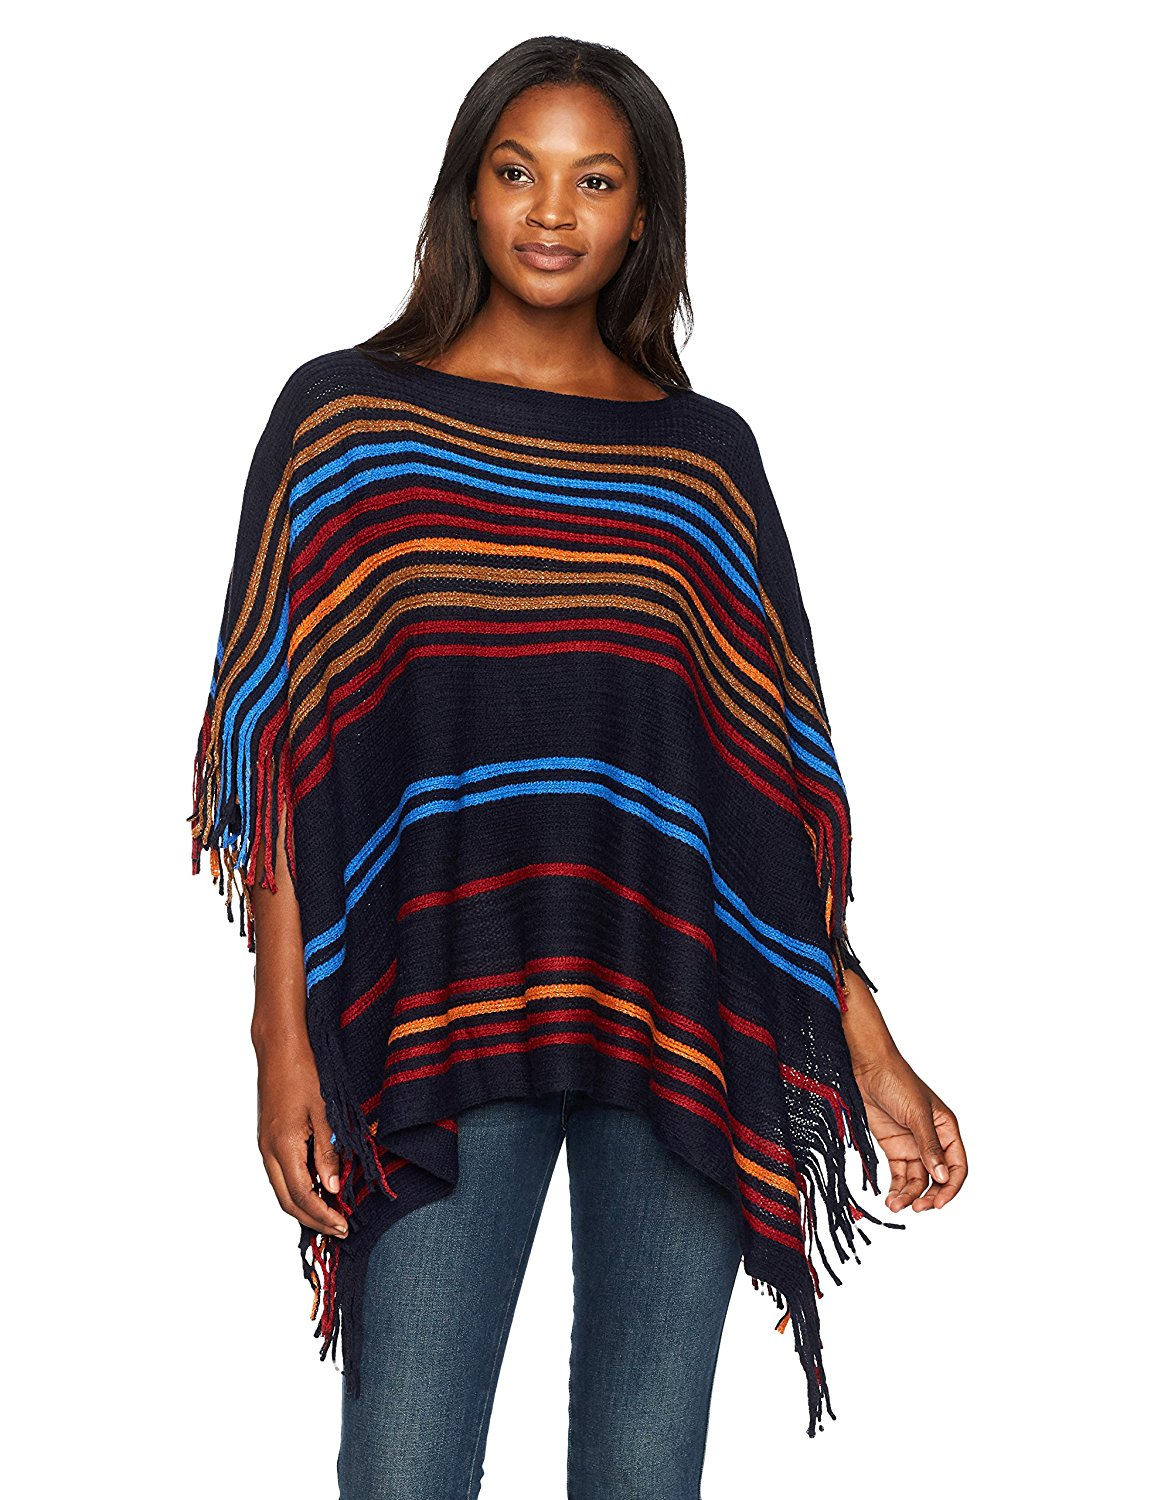 40d361a0ac2d36 Get Quotations · Ruby Rd. Women's Warp Knit Stripe Sweater Ruana Poncho  With Fringe